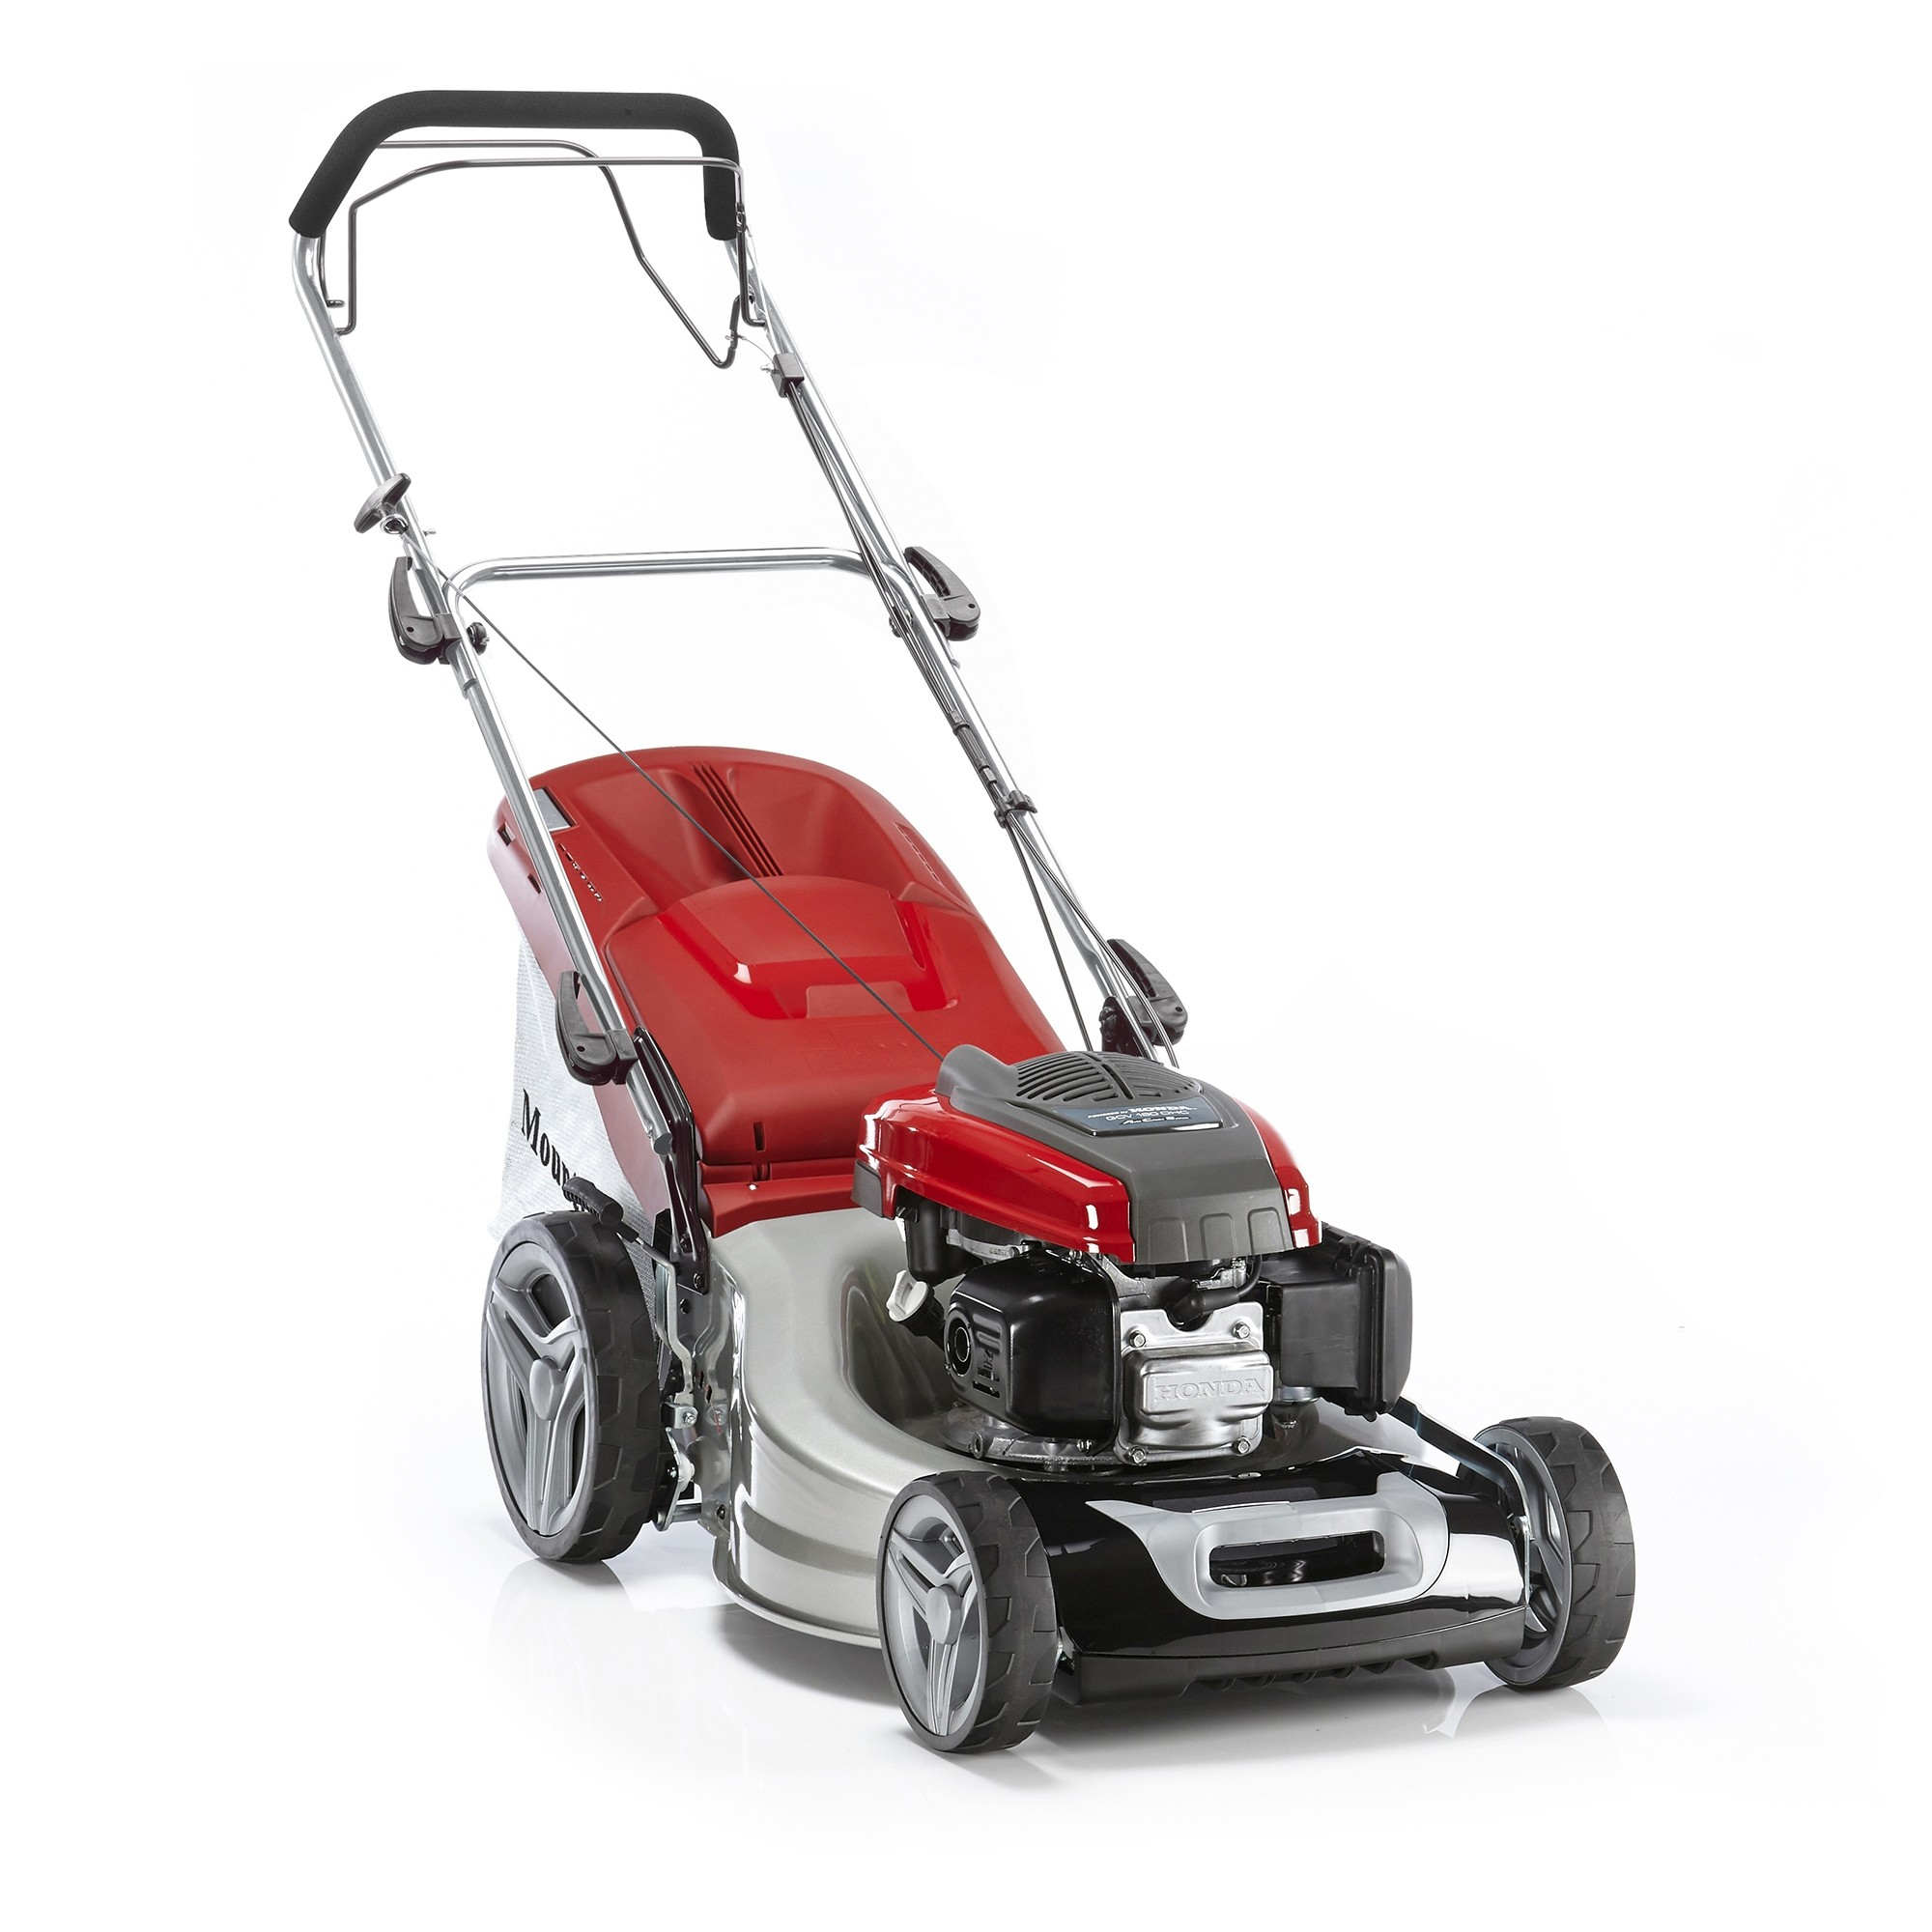 Mountfield SP535HW 53cm petrol lawnmower